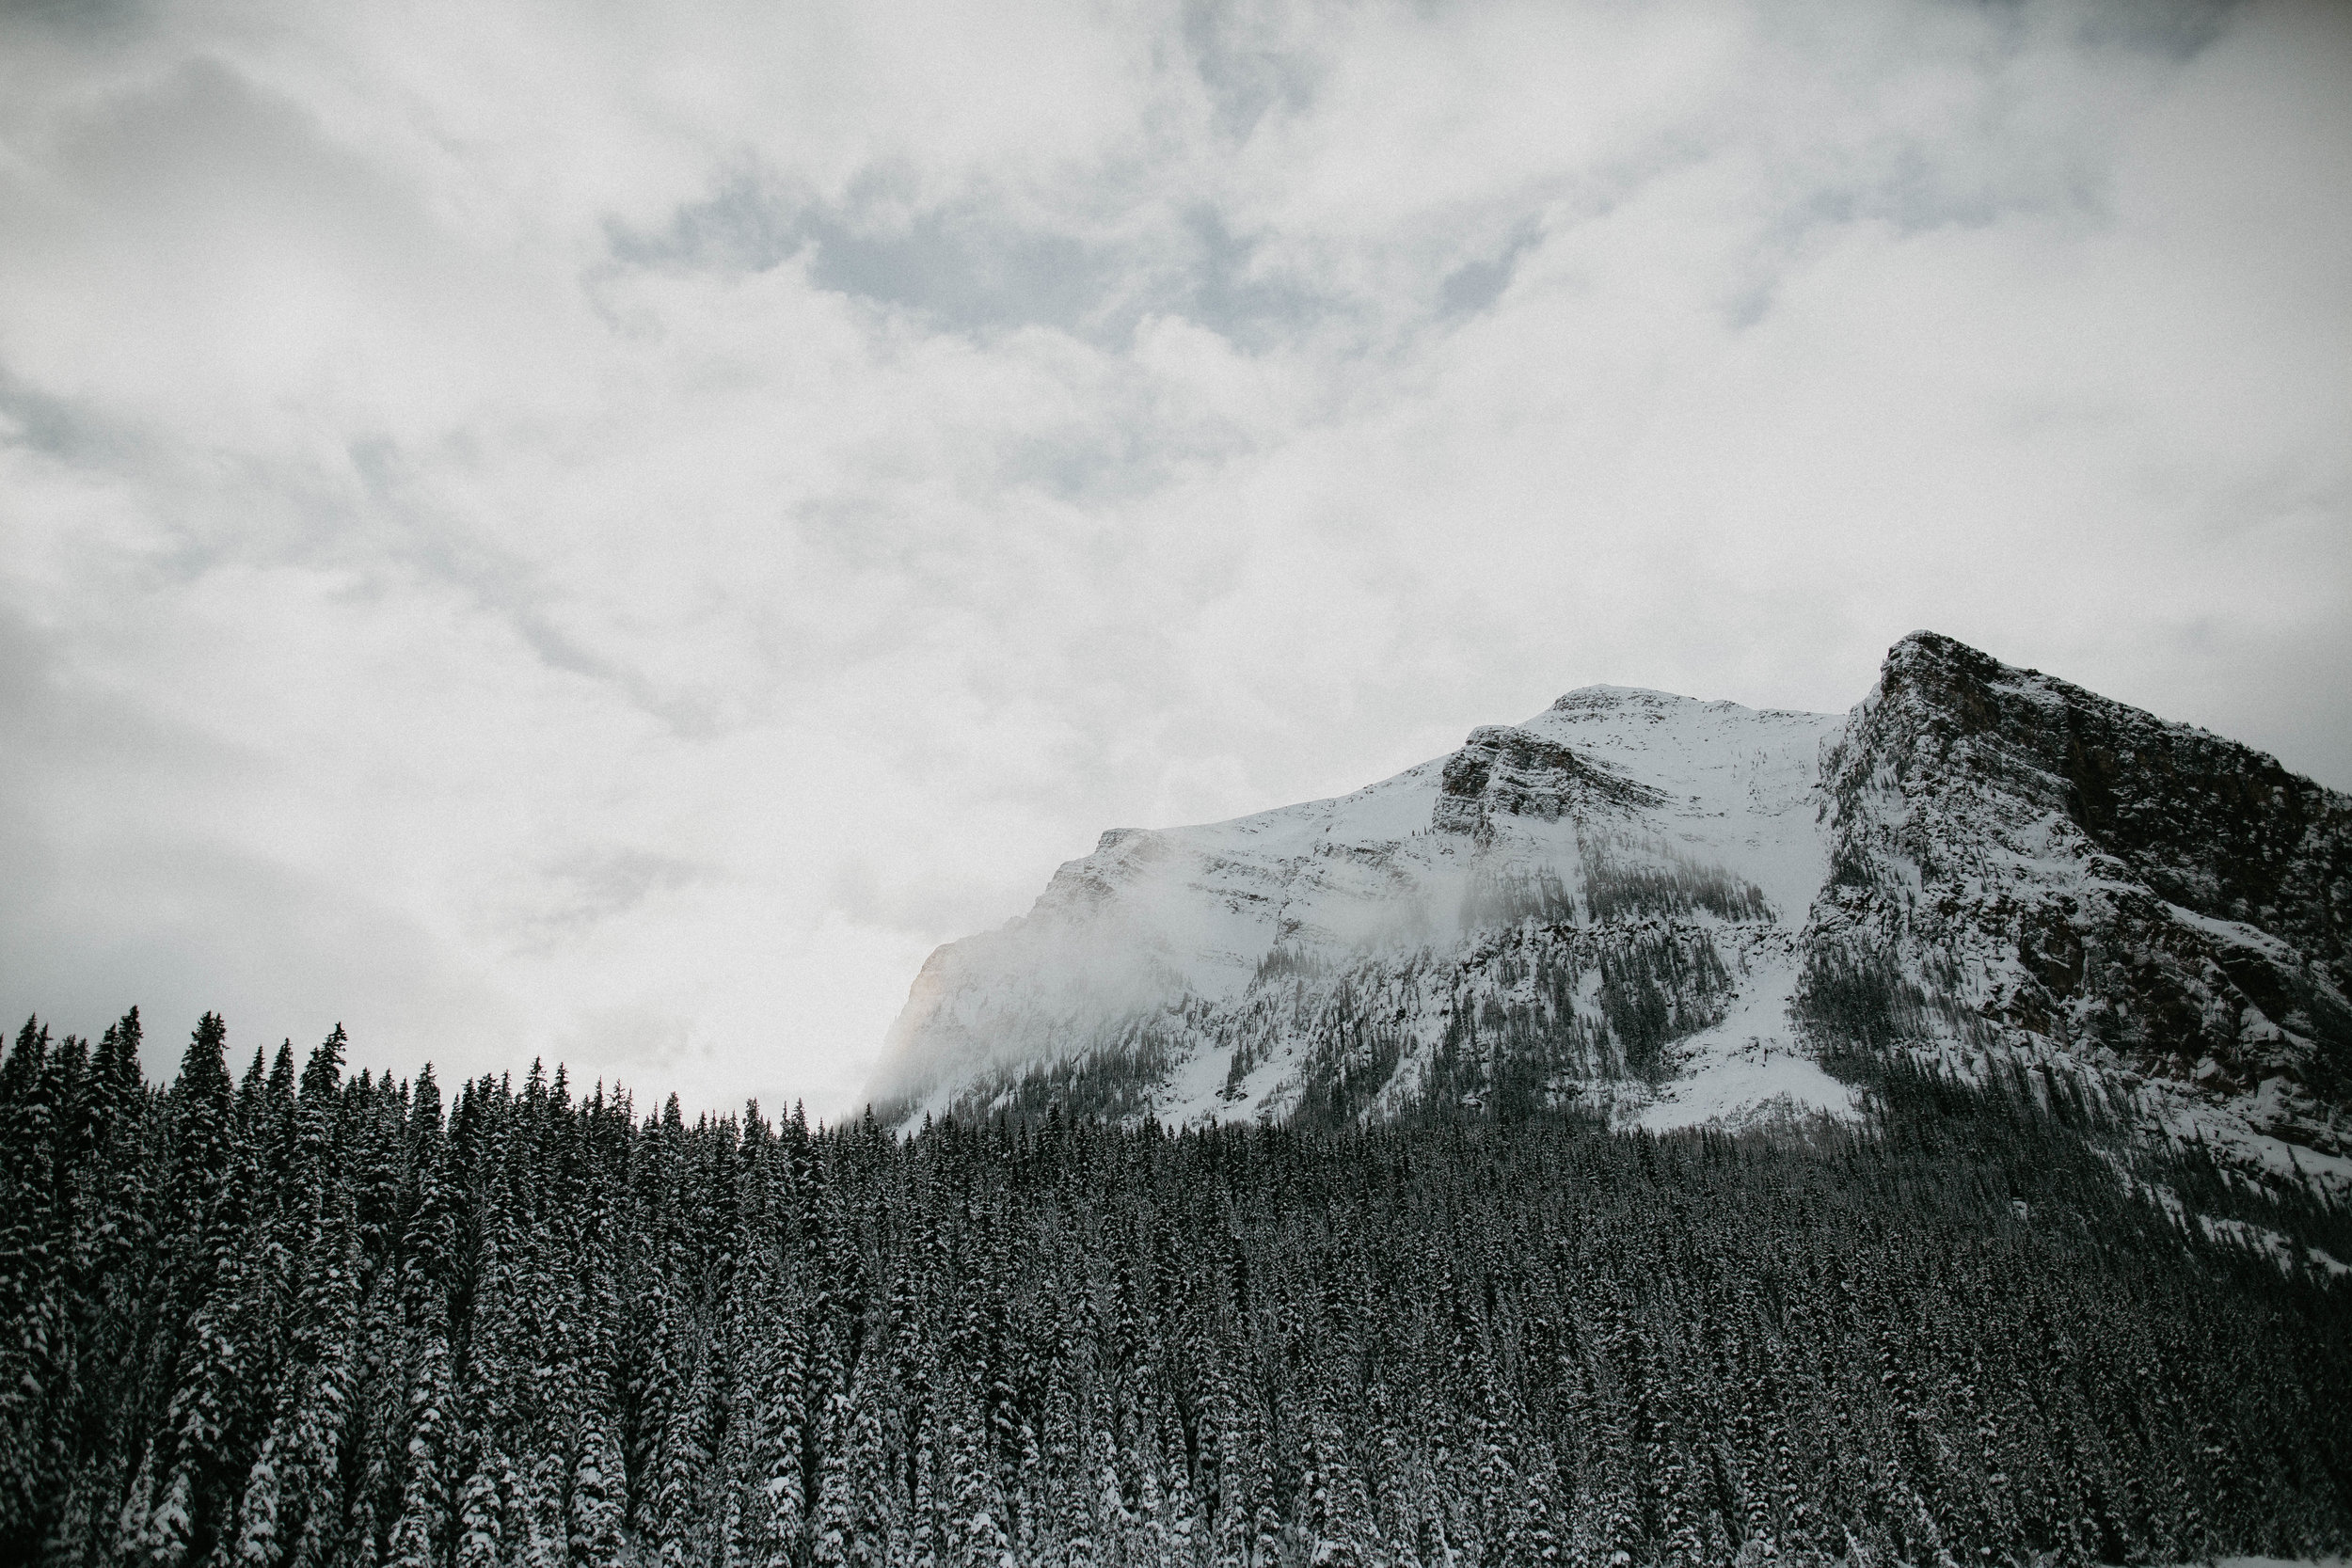 a view from standing on Lake Louise